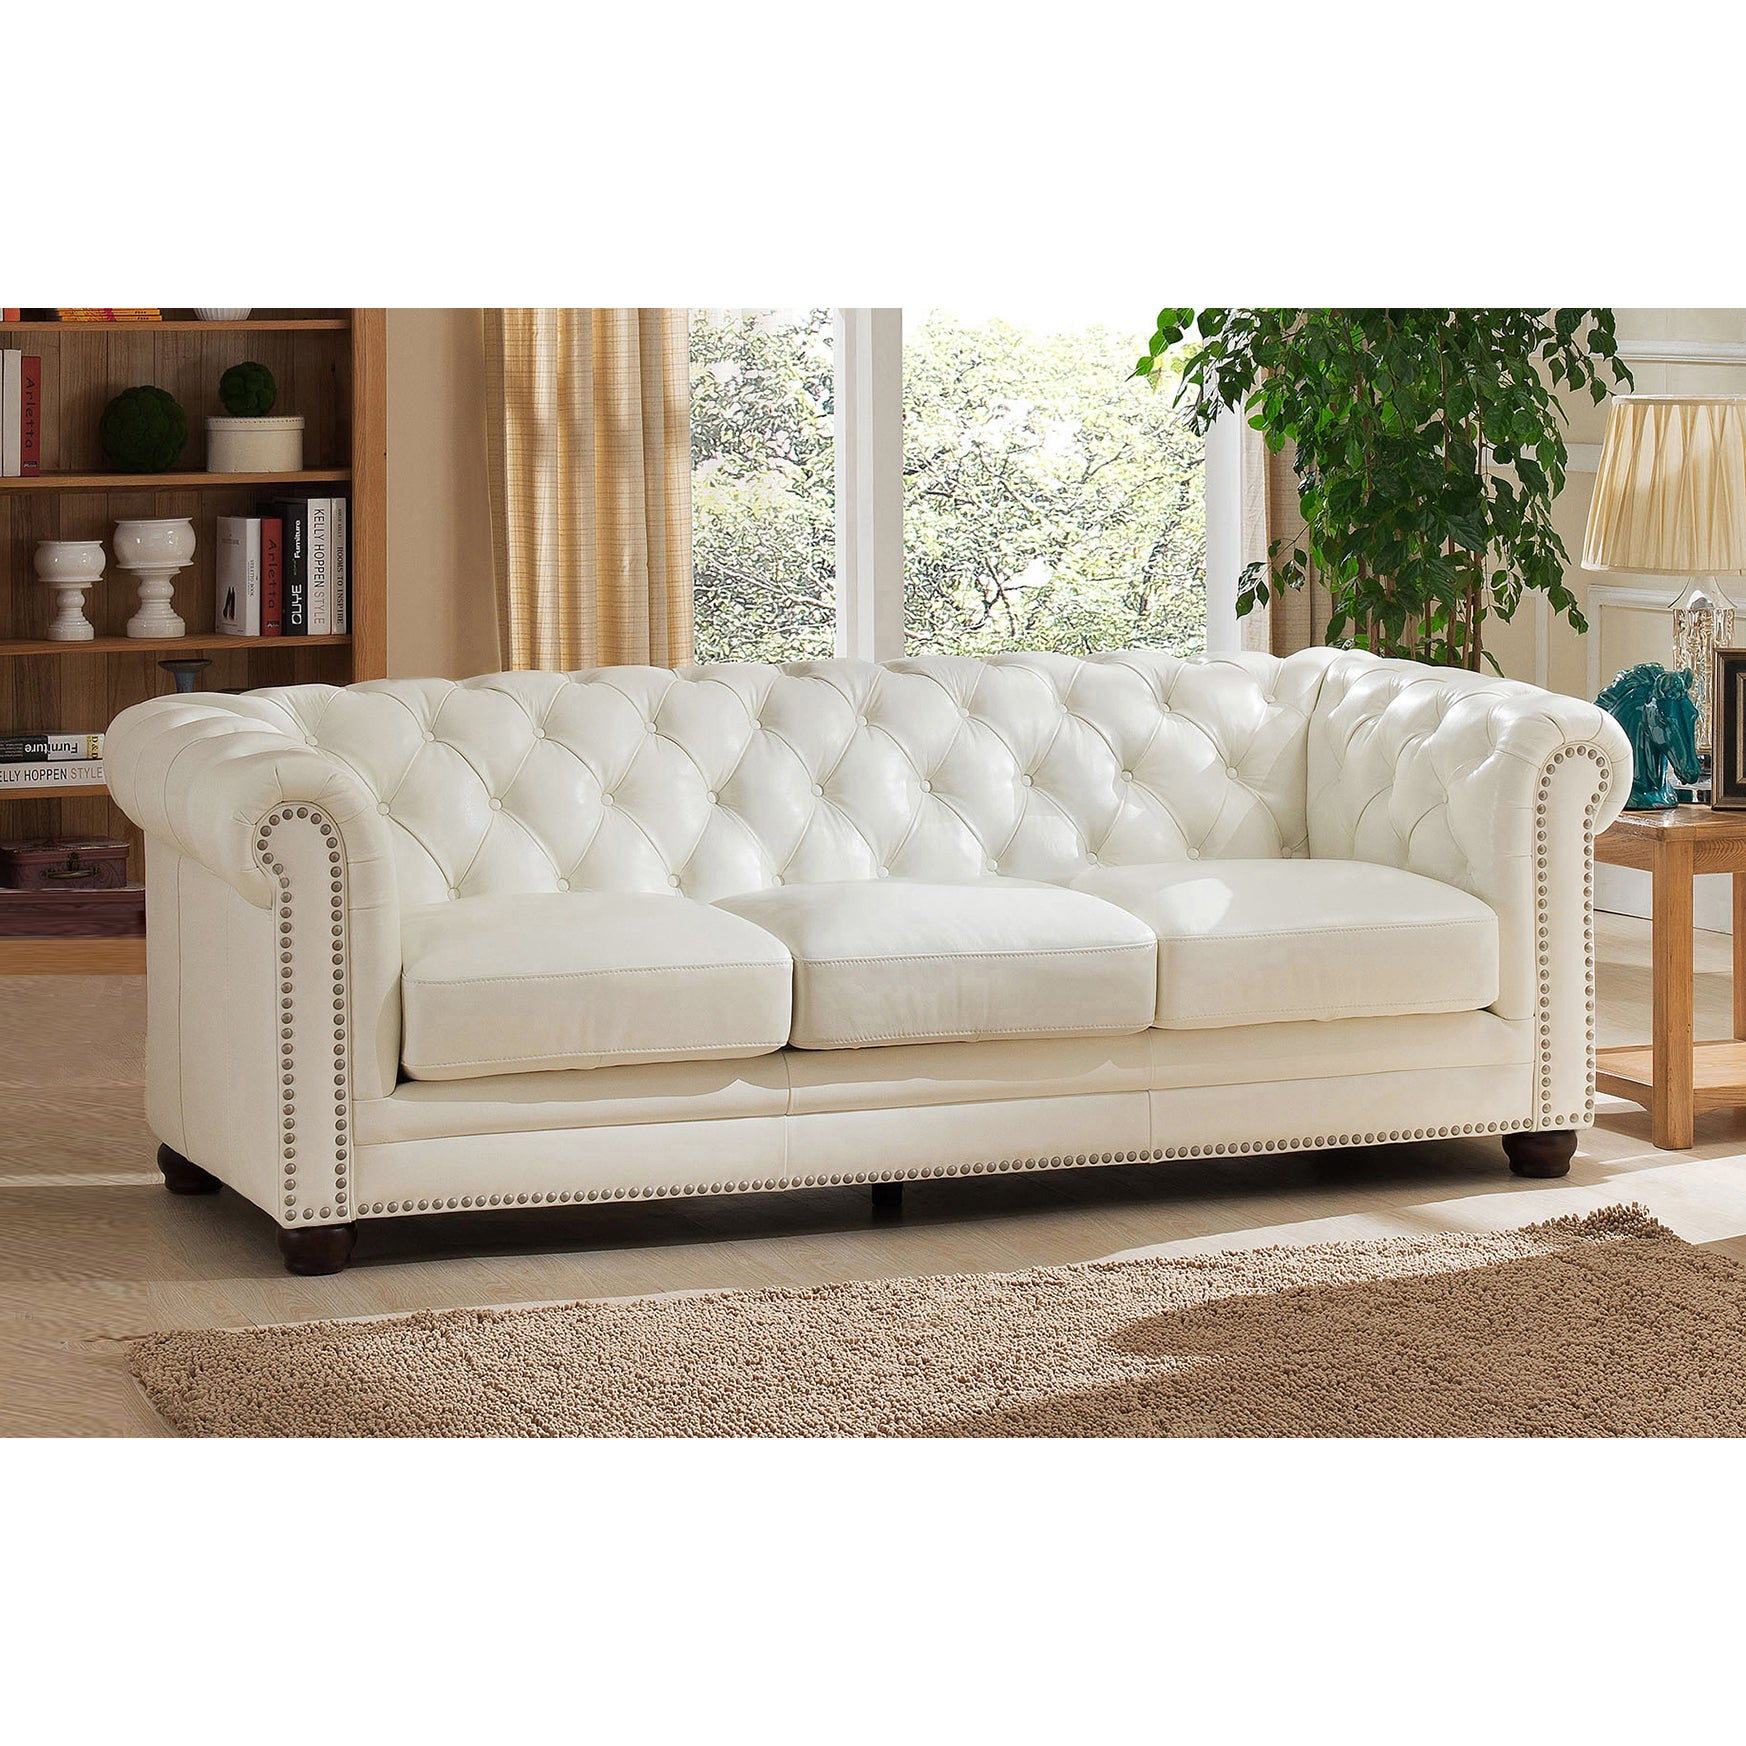 Shop Nashville White Genuine Leather Chesterfield Sofa With Feather